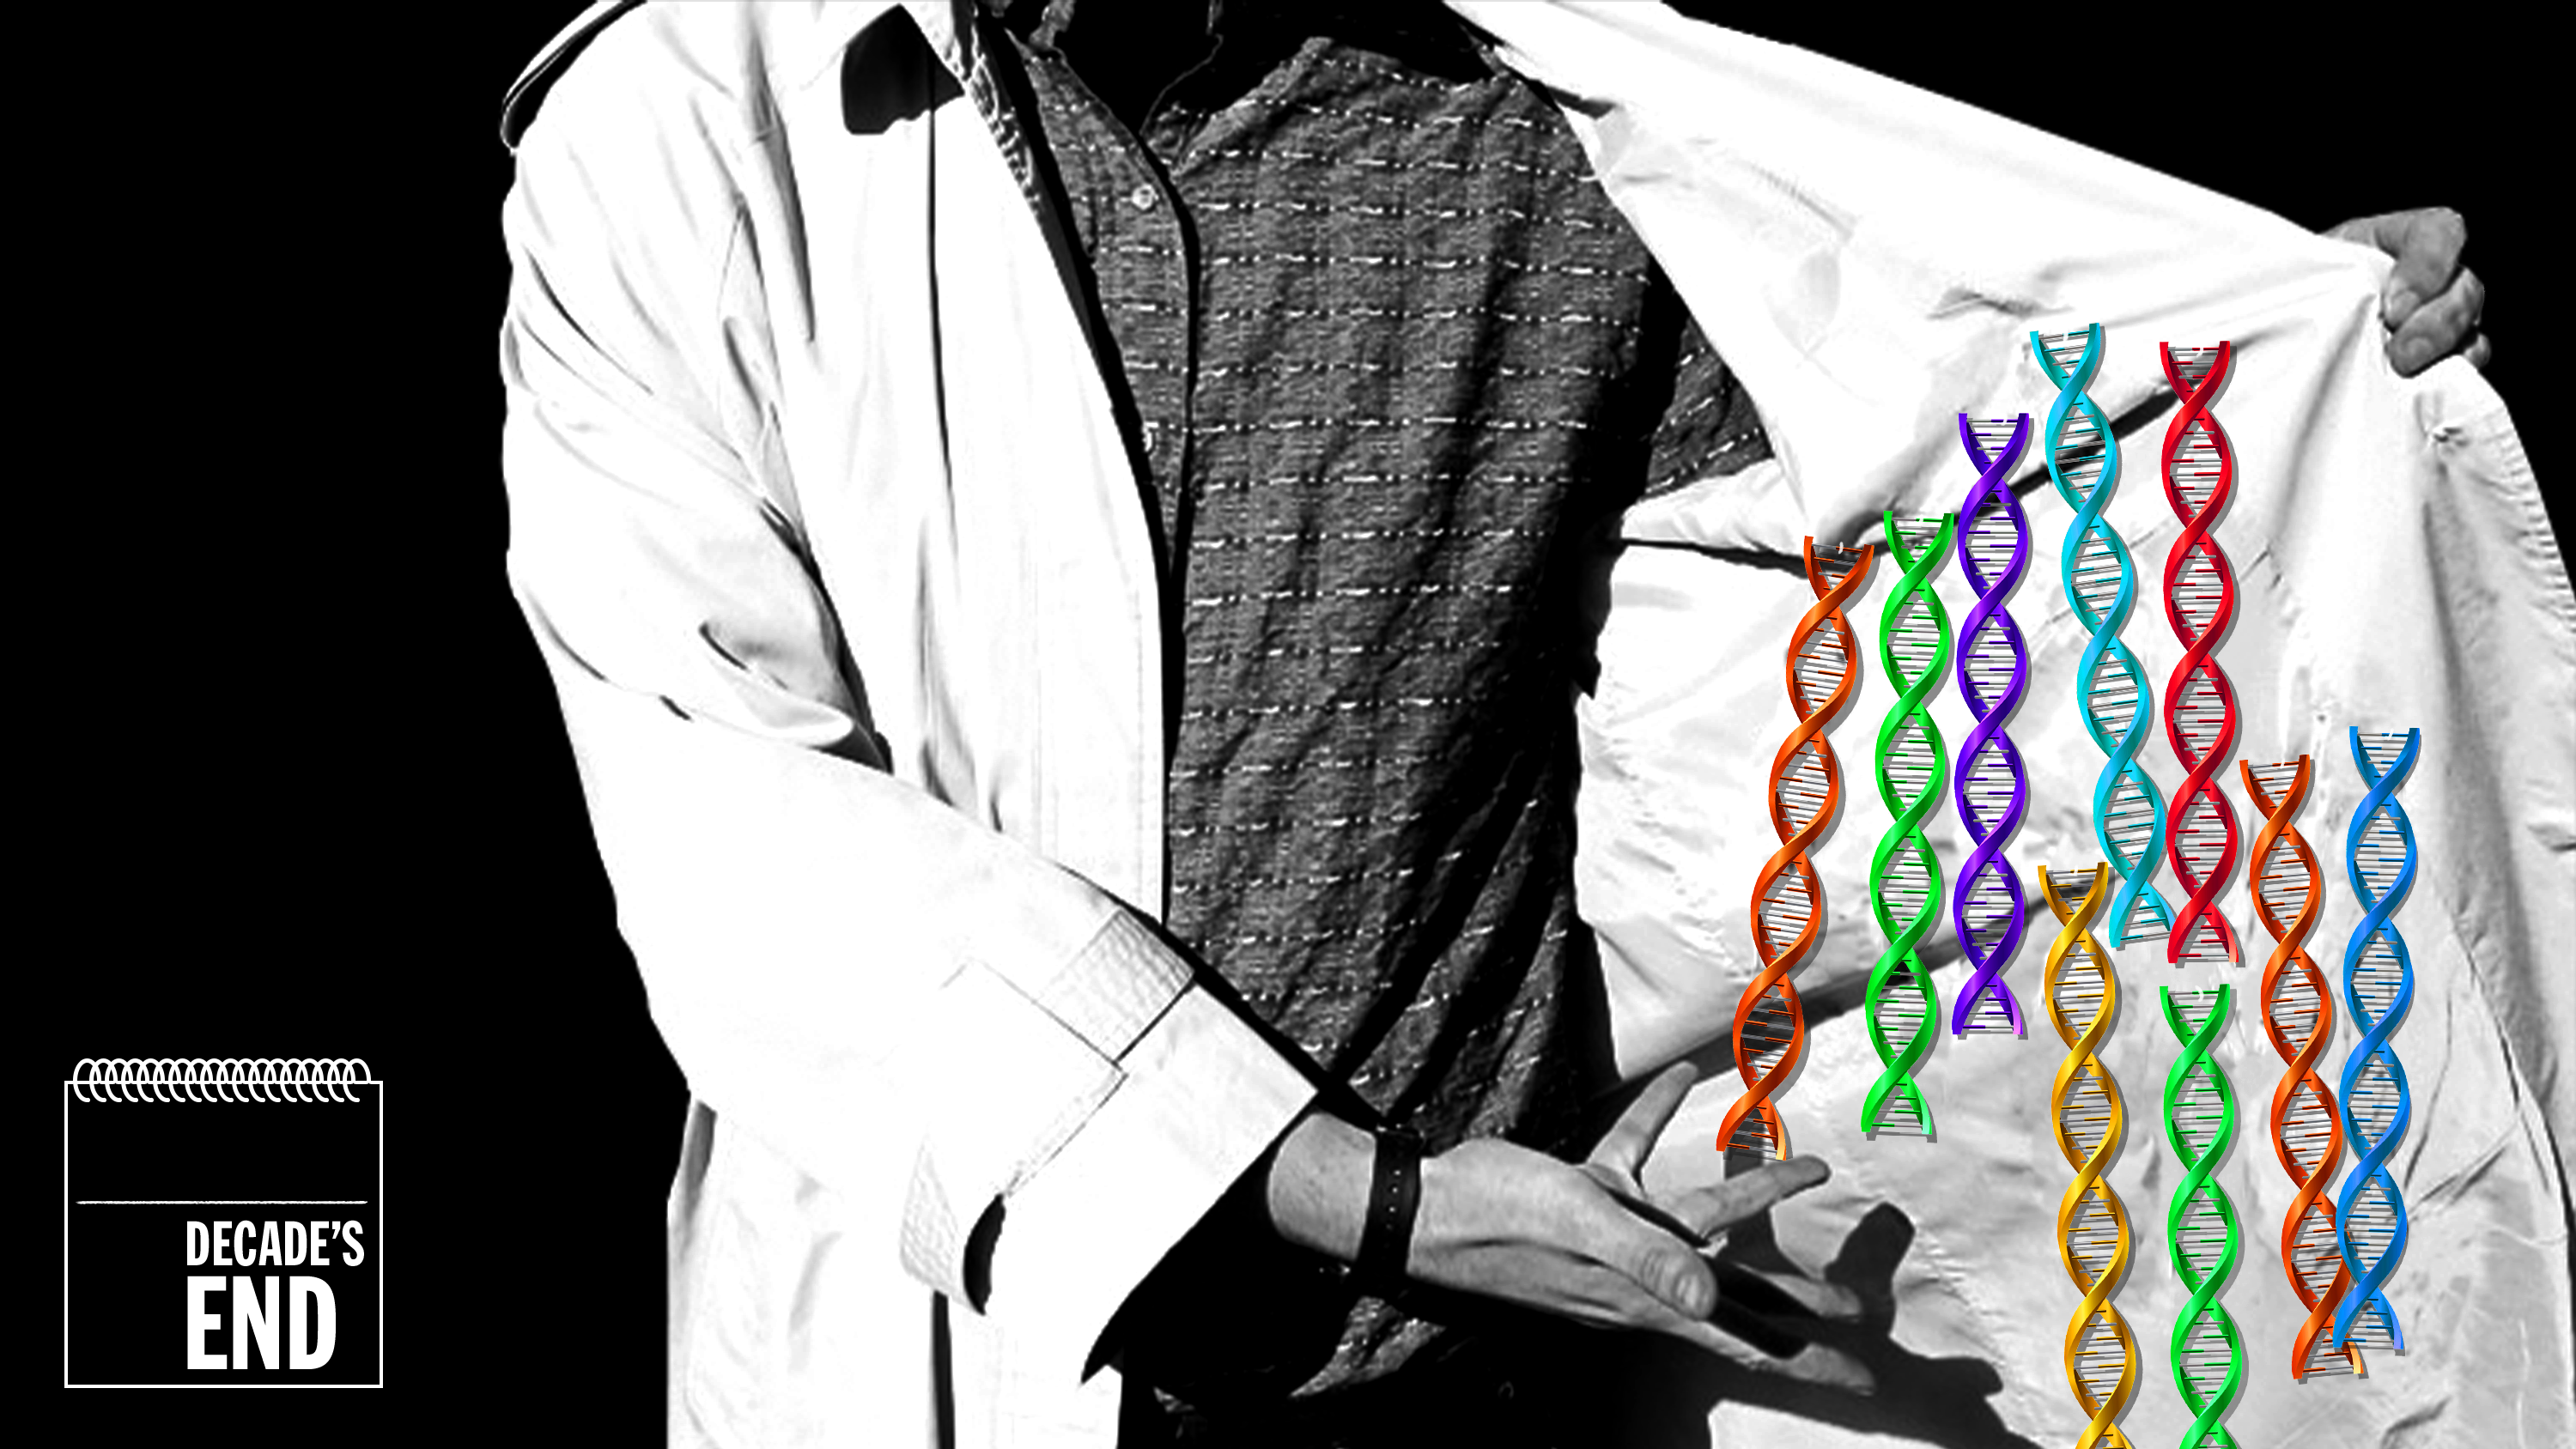 Consumer DNA Testing May Be The Biggest Health Scam Of The Decade